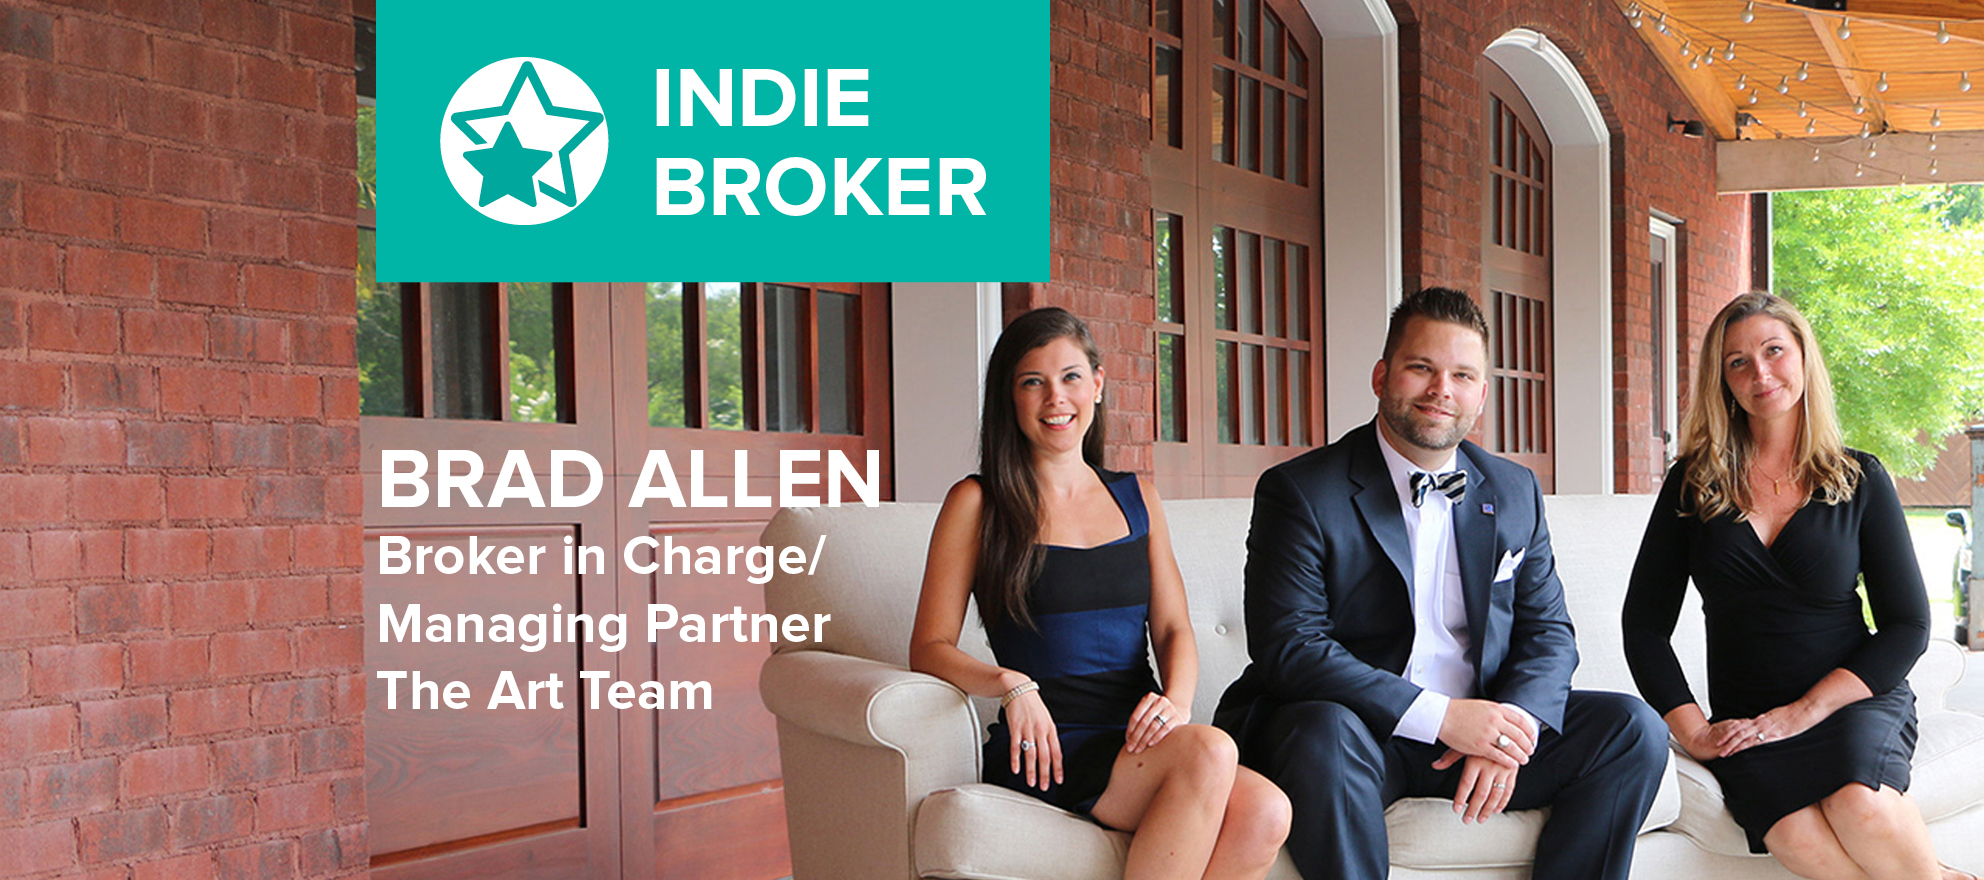 Brad Allen: 'When you operate as an independent firm, every option is on the table'